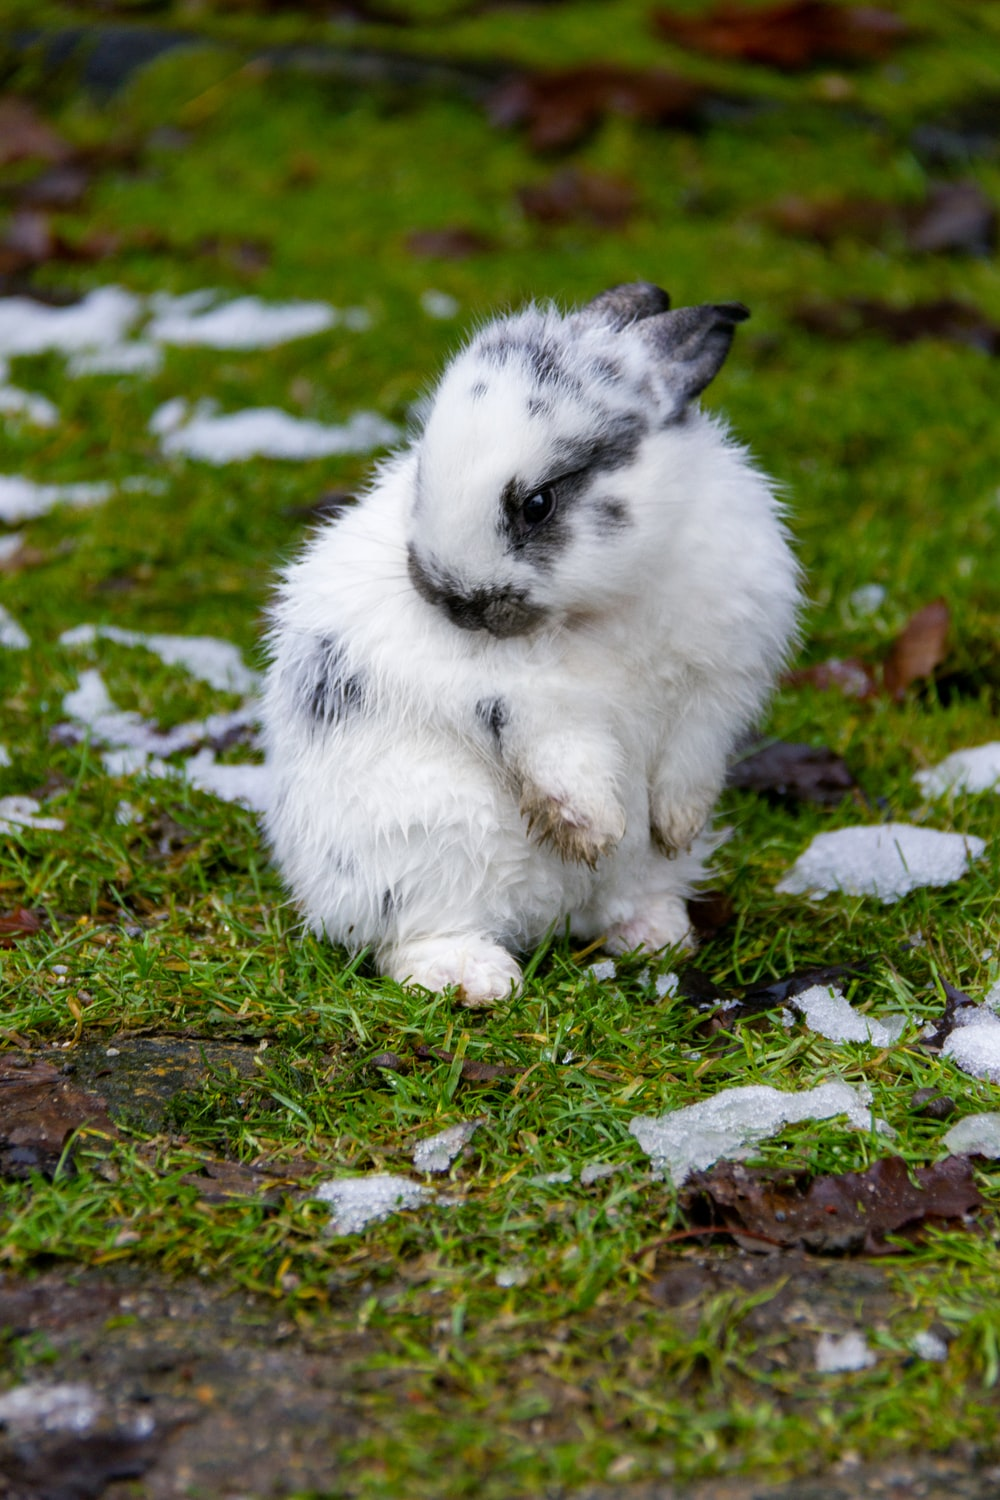 white and gray rabbit on green grass